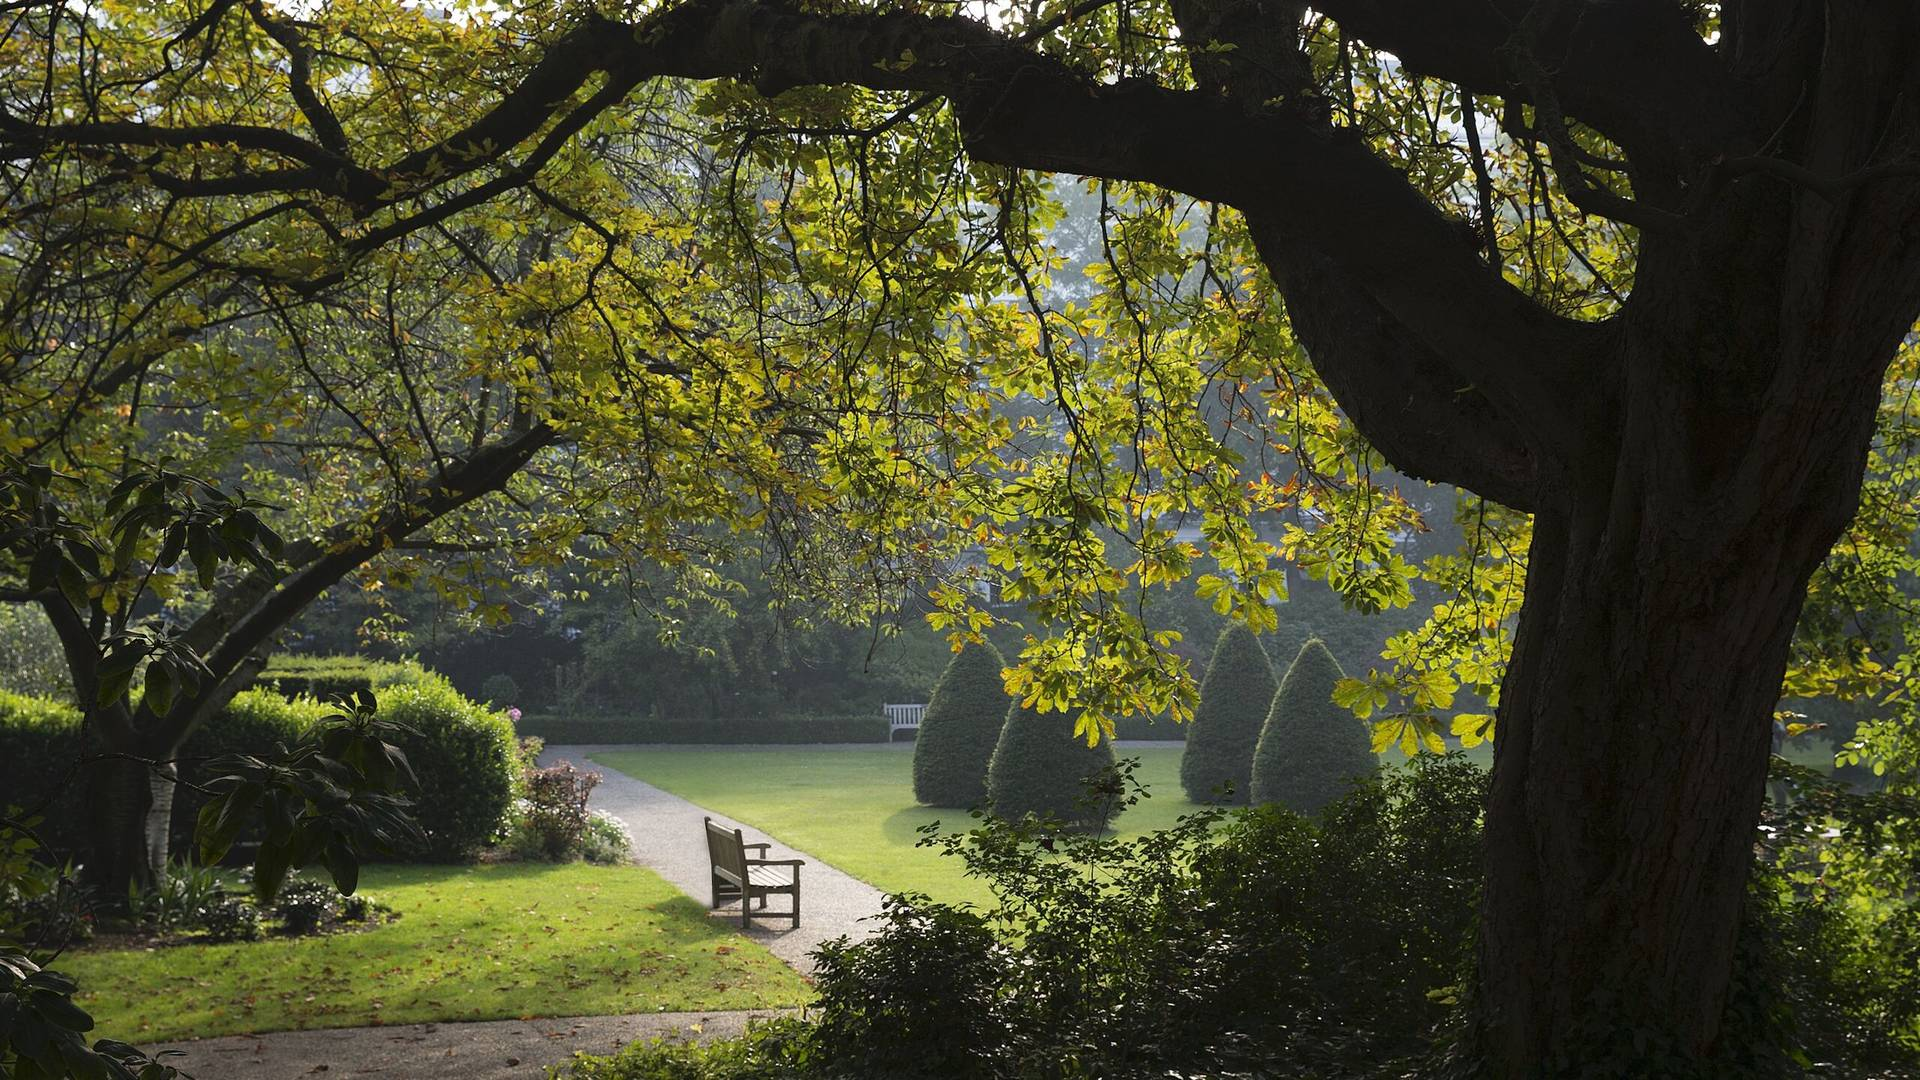 One of London's Royal Parks